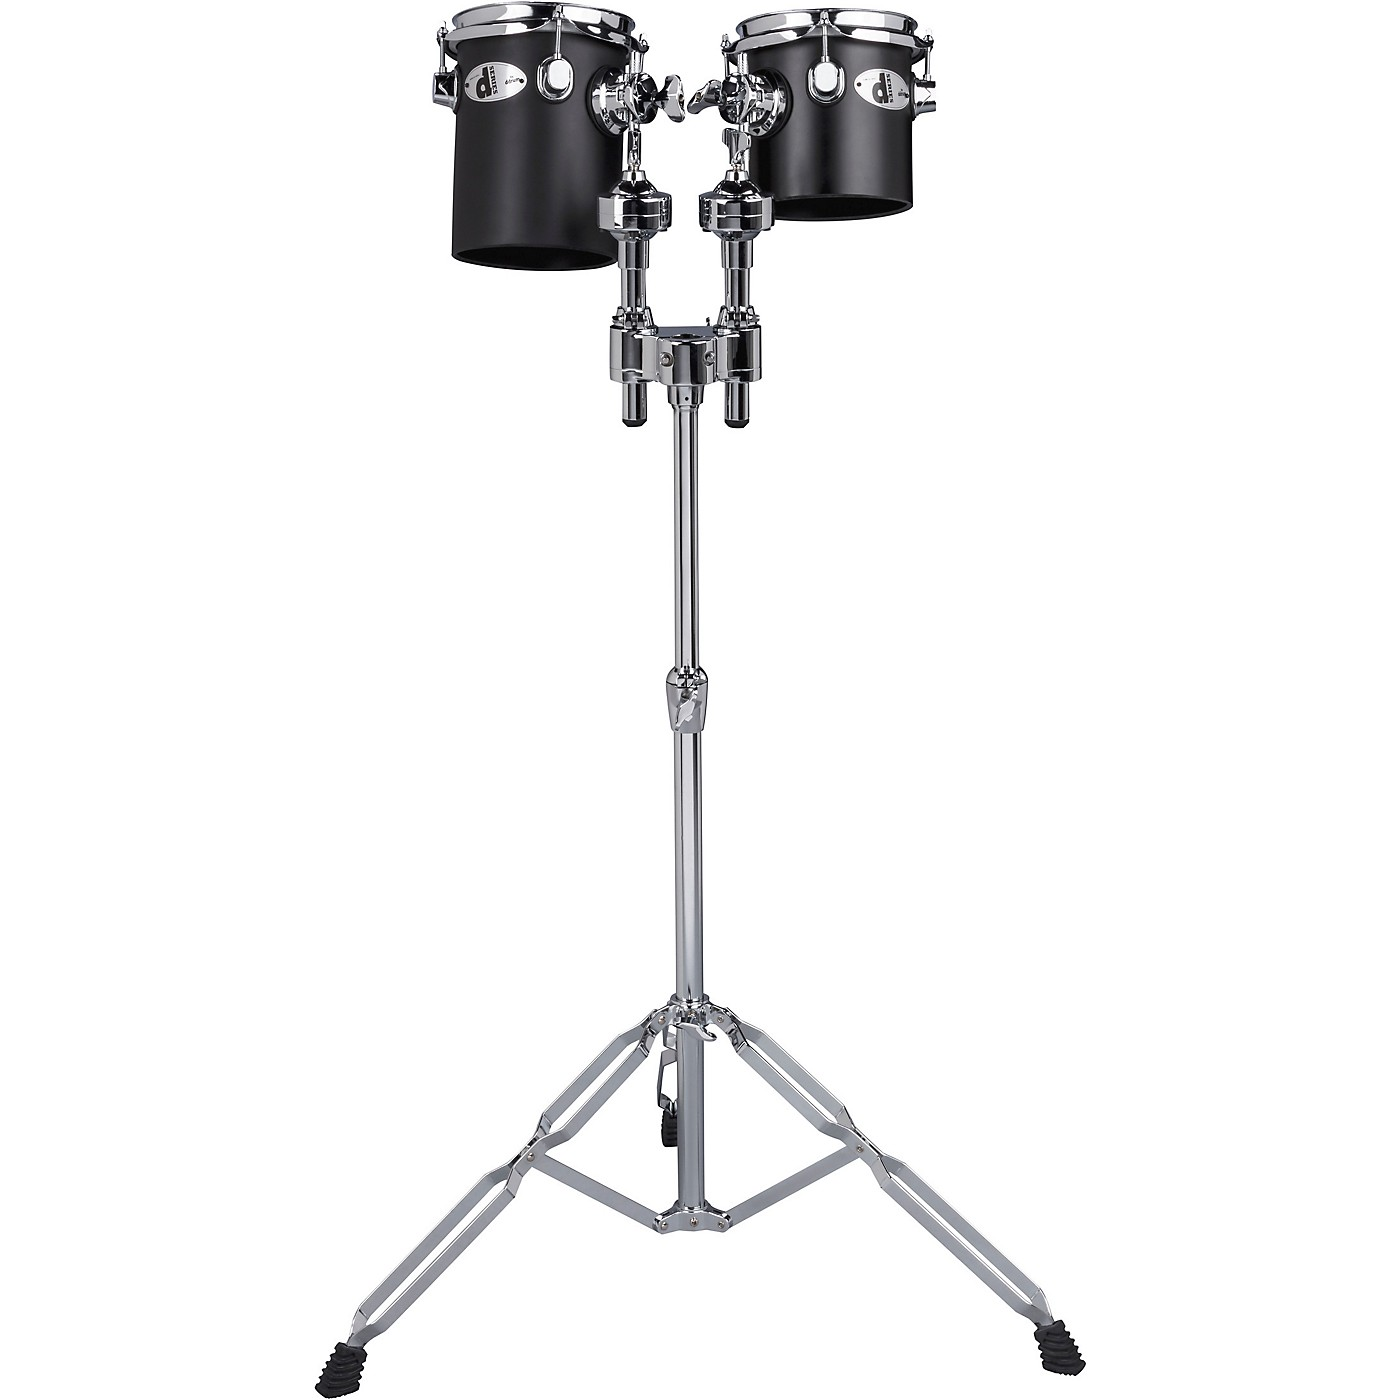 ddrum Deccabons, Black 6 in. and 8 in. thumbnail